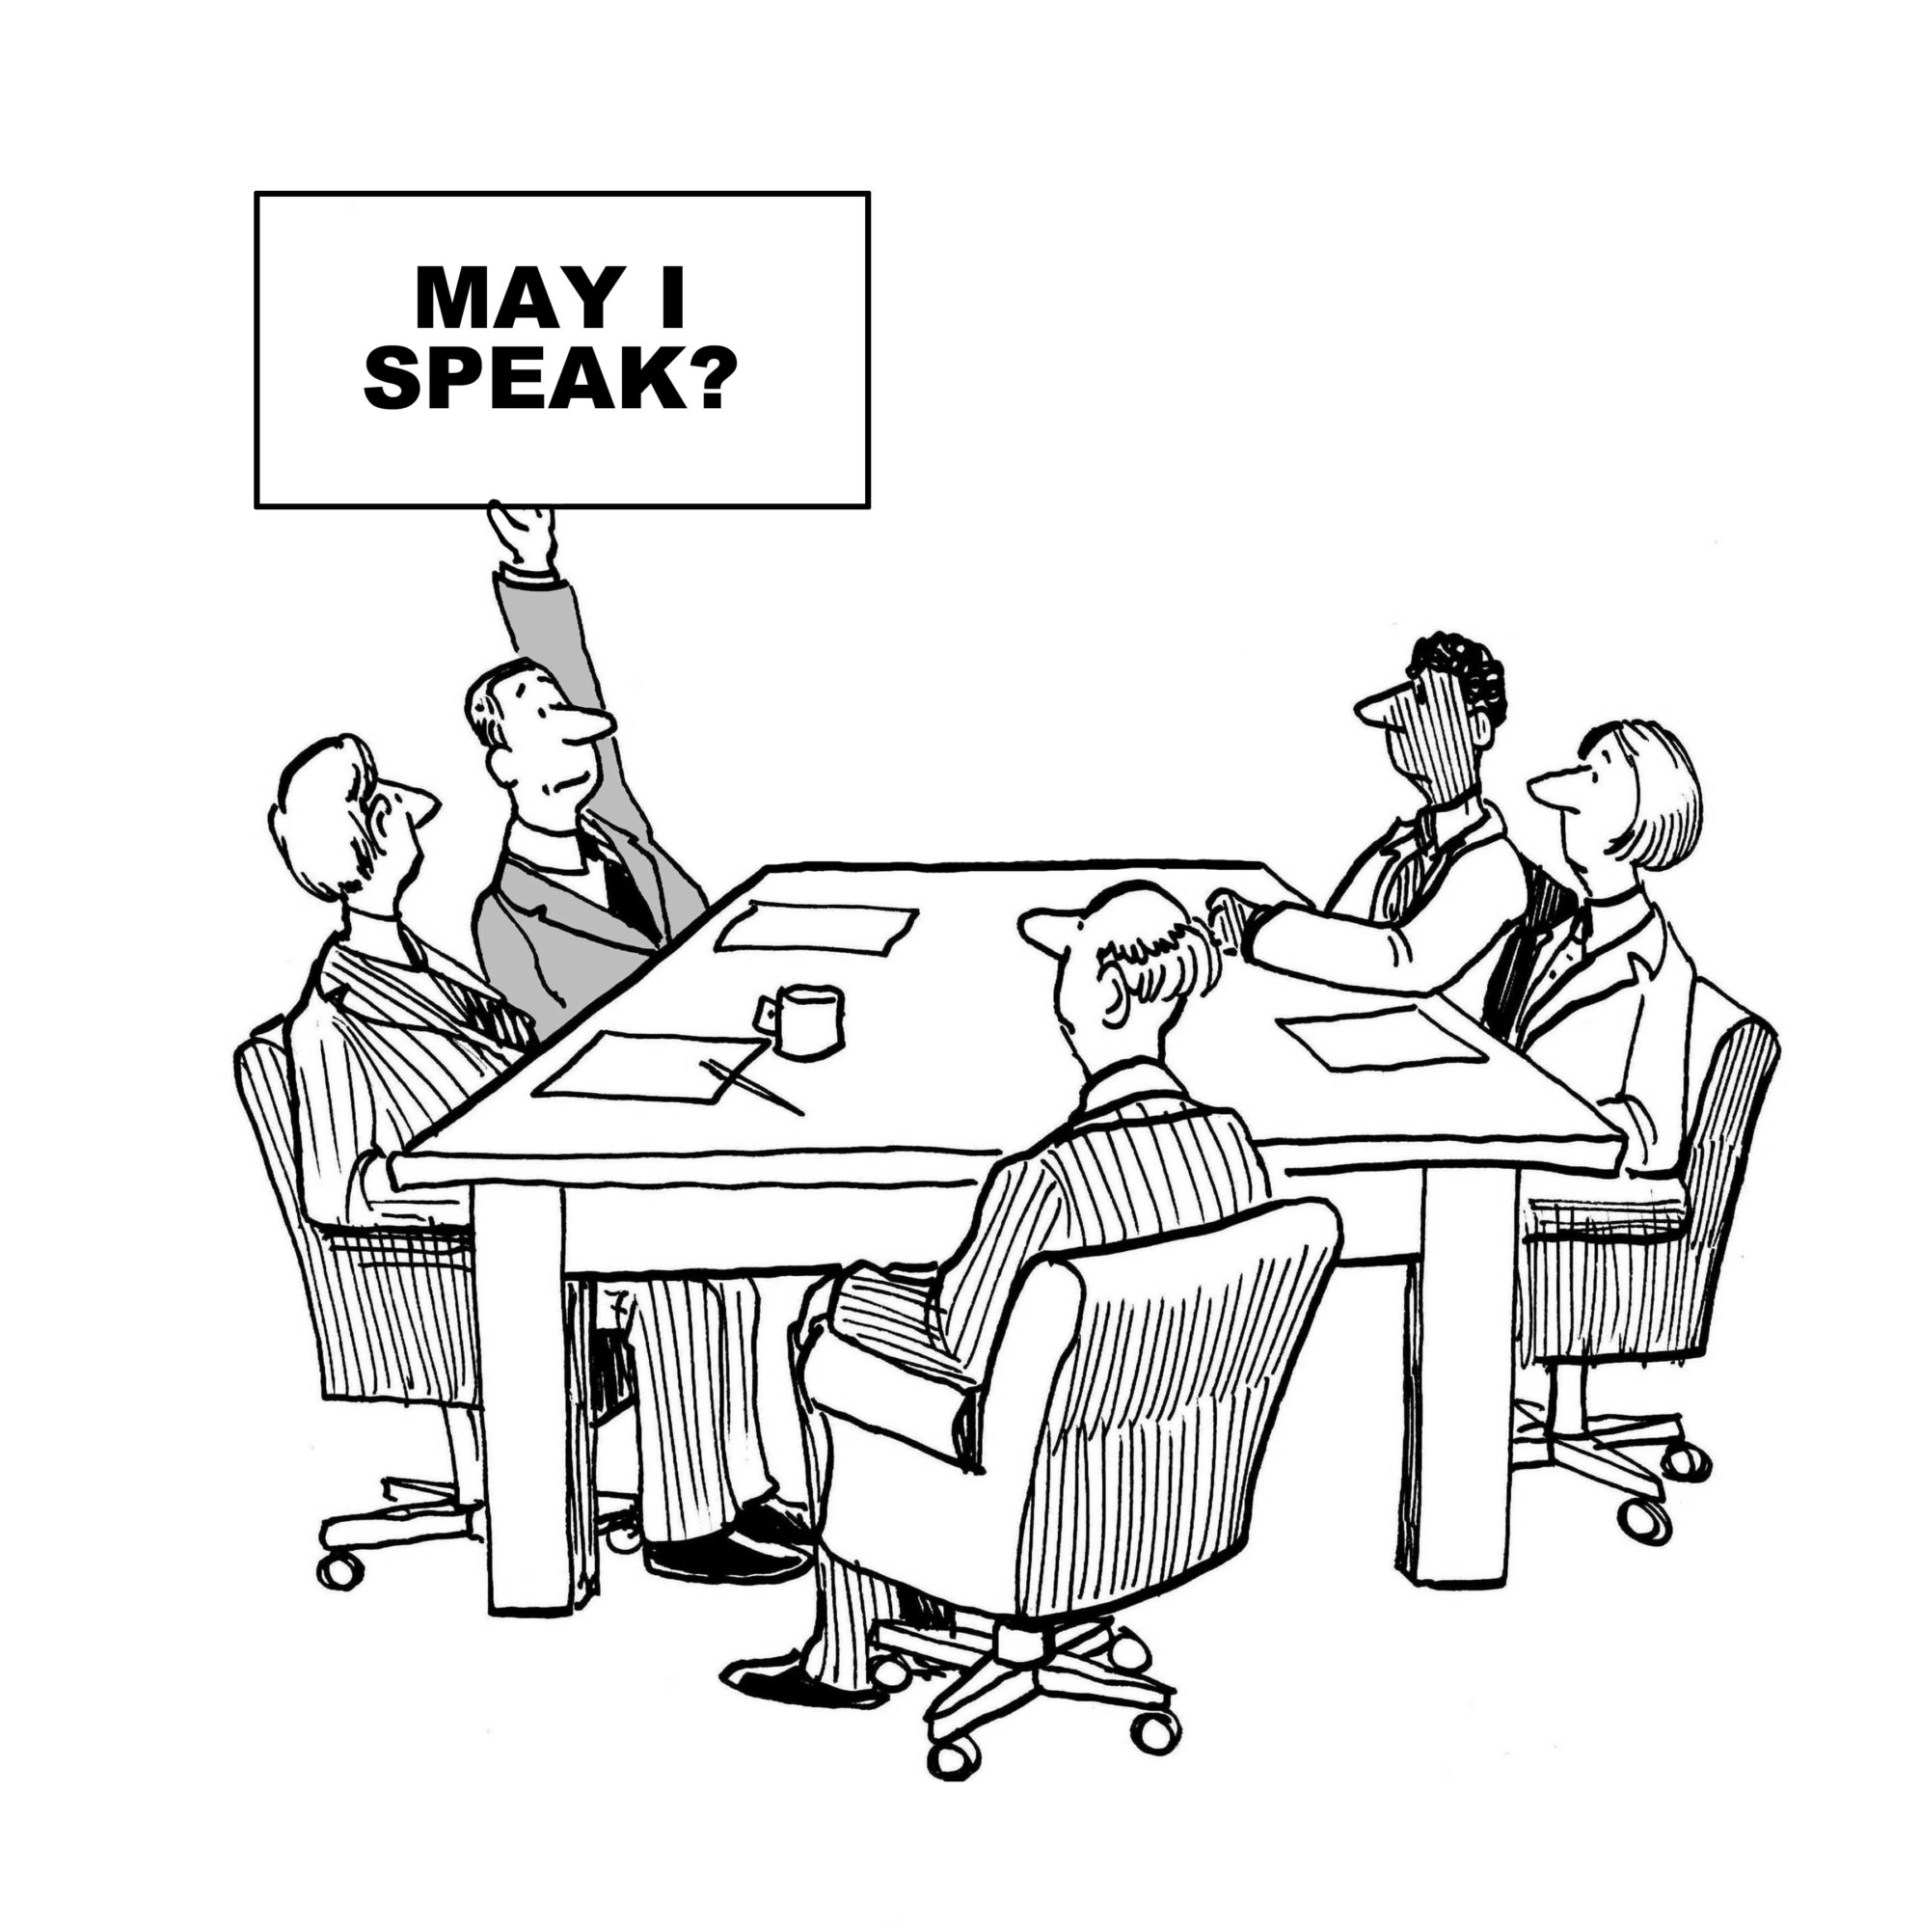 Questions to Ask at The Annual Shareholders' Meeting